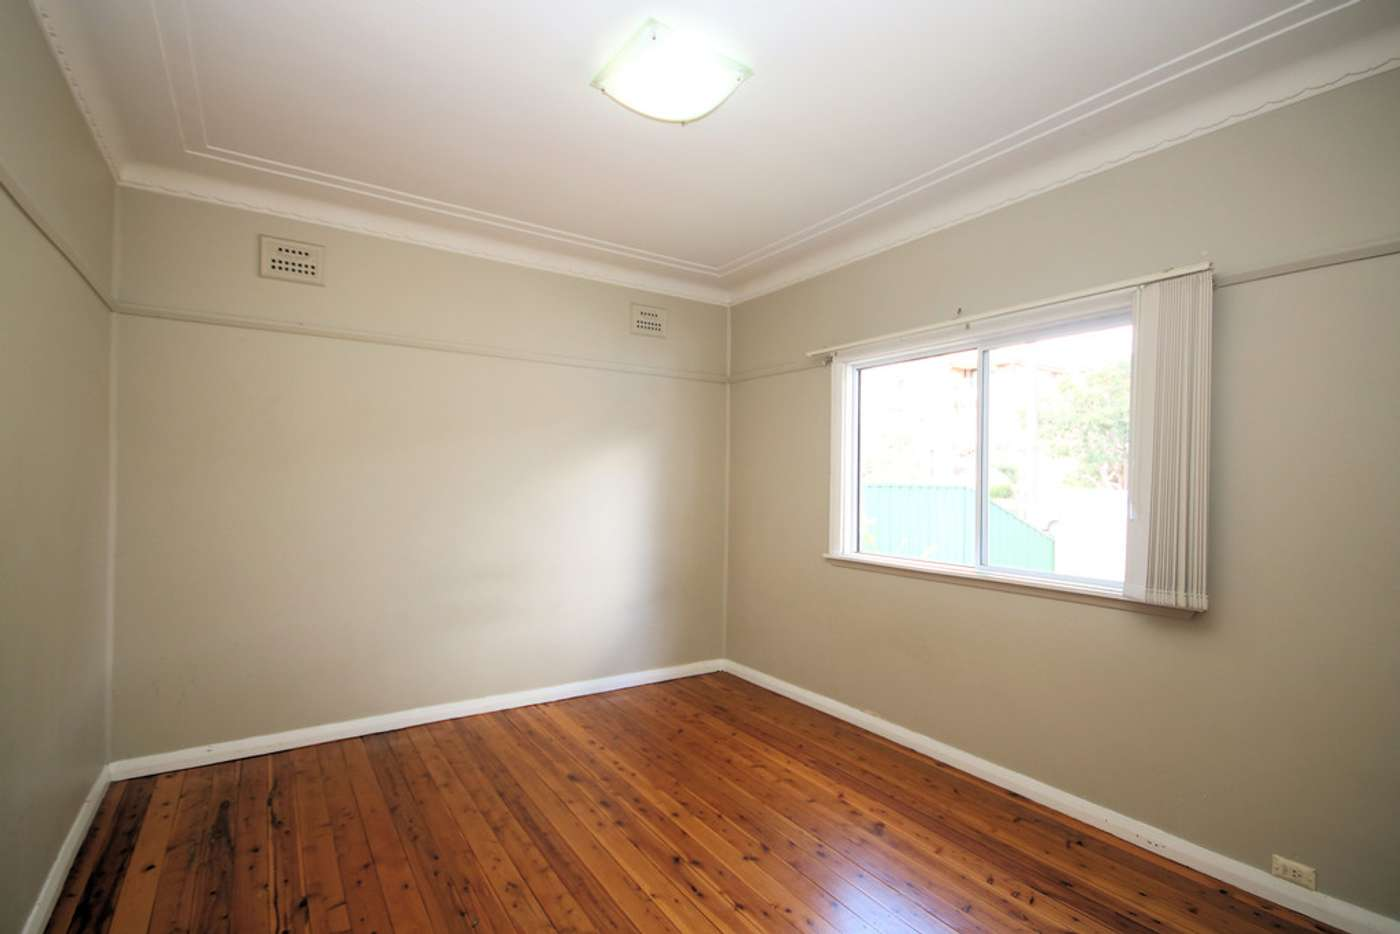 Seventh view of Homely house listing, 93 Beaconsfield Street, Silverwater NSW 2128